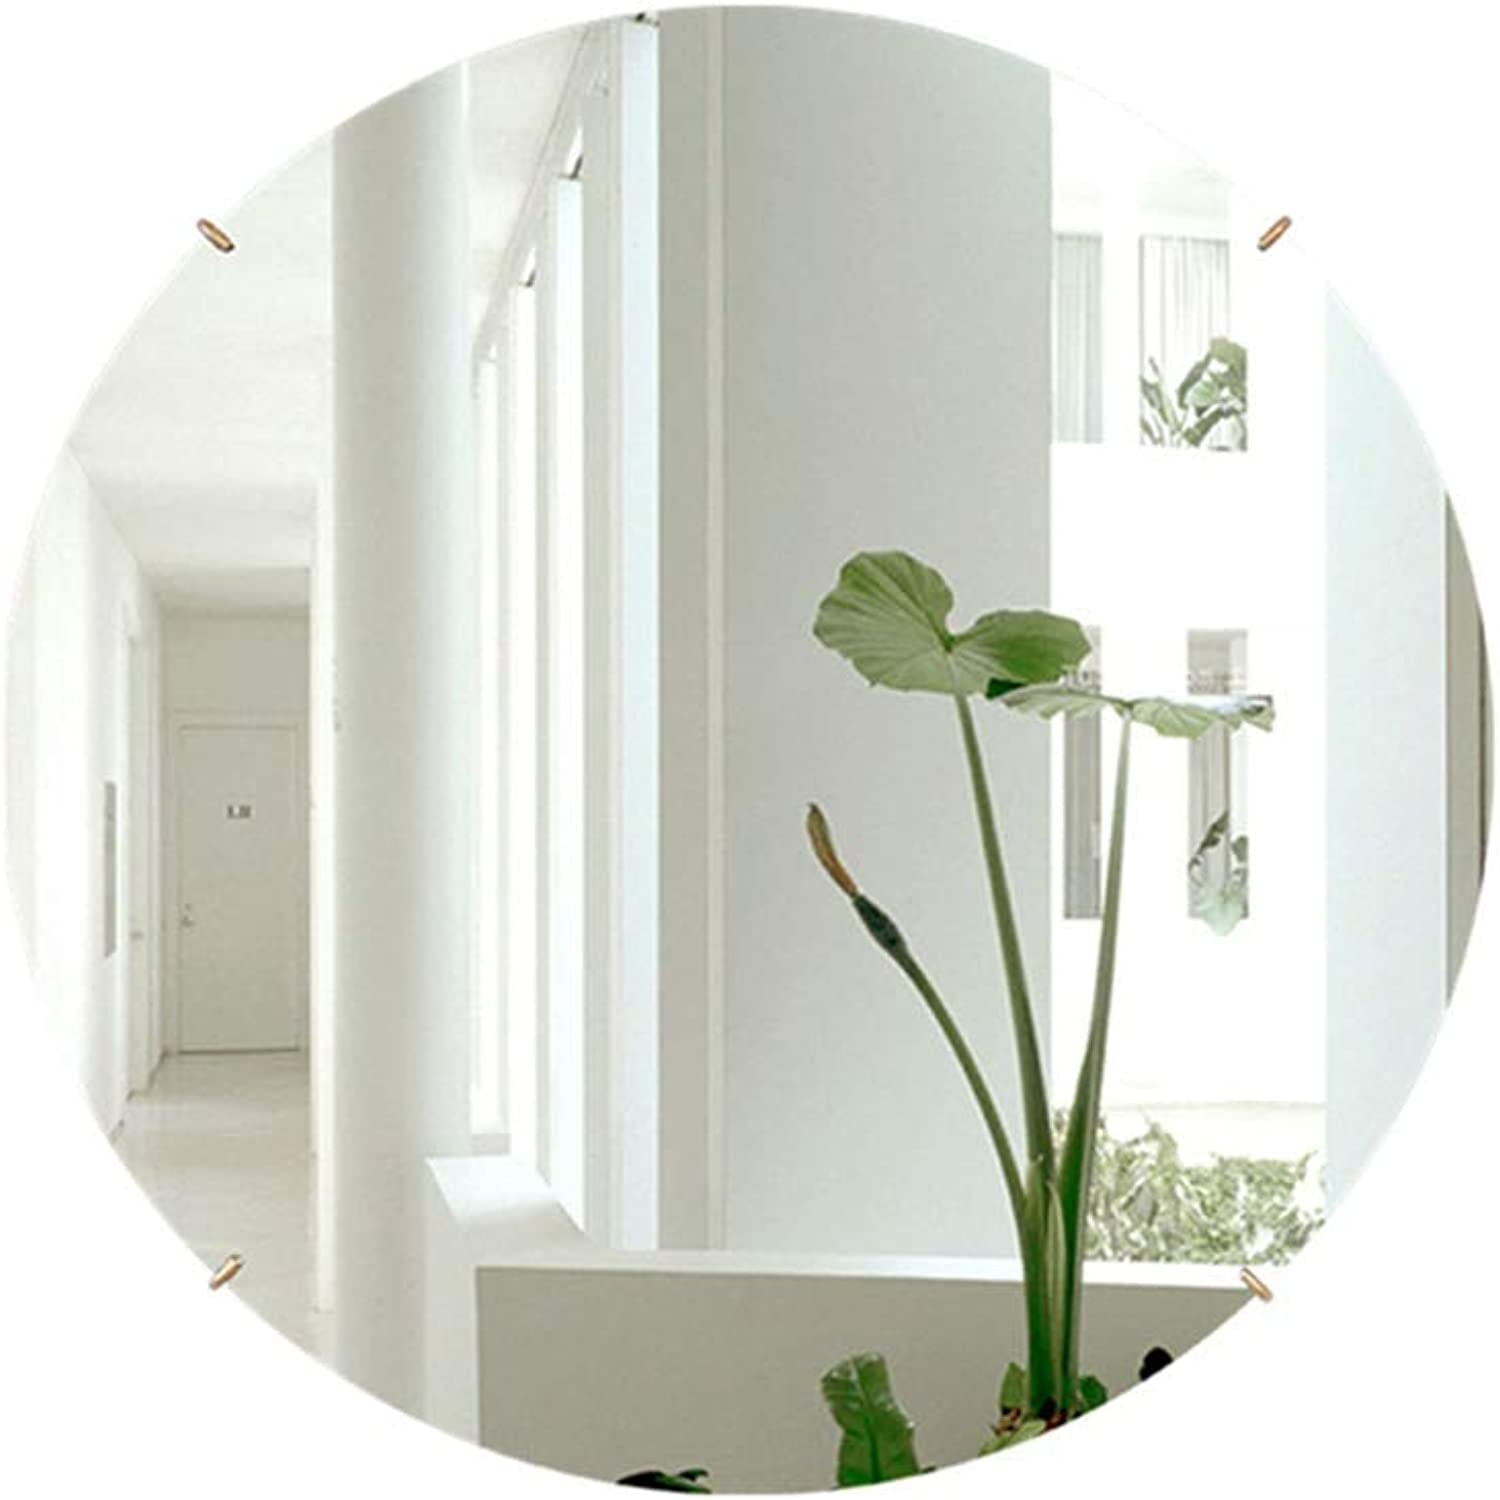 RXY-mirror Bathroom Wall-Mounted Frameless Mirror, Simple Porch Decorative Round Mirror (color   gold, Size   40cm)